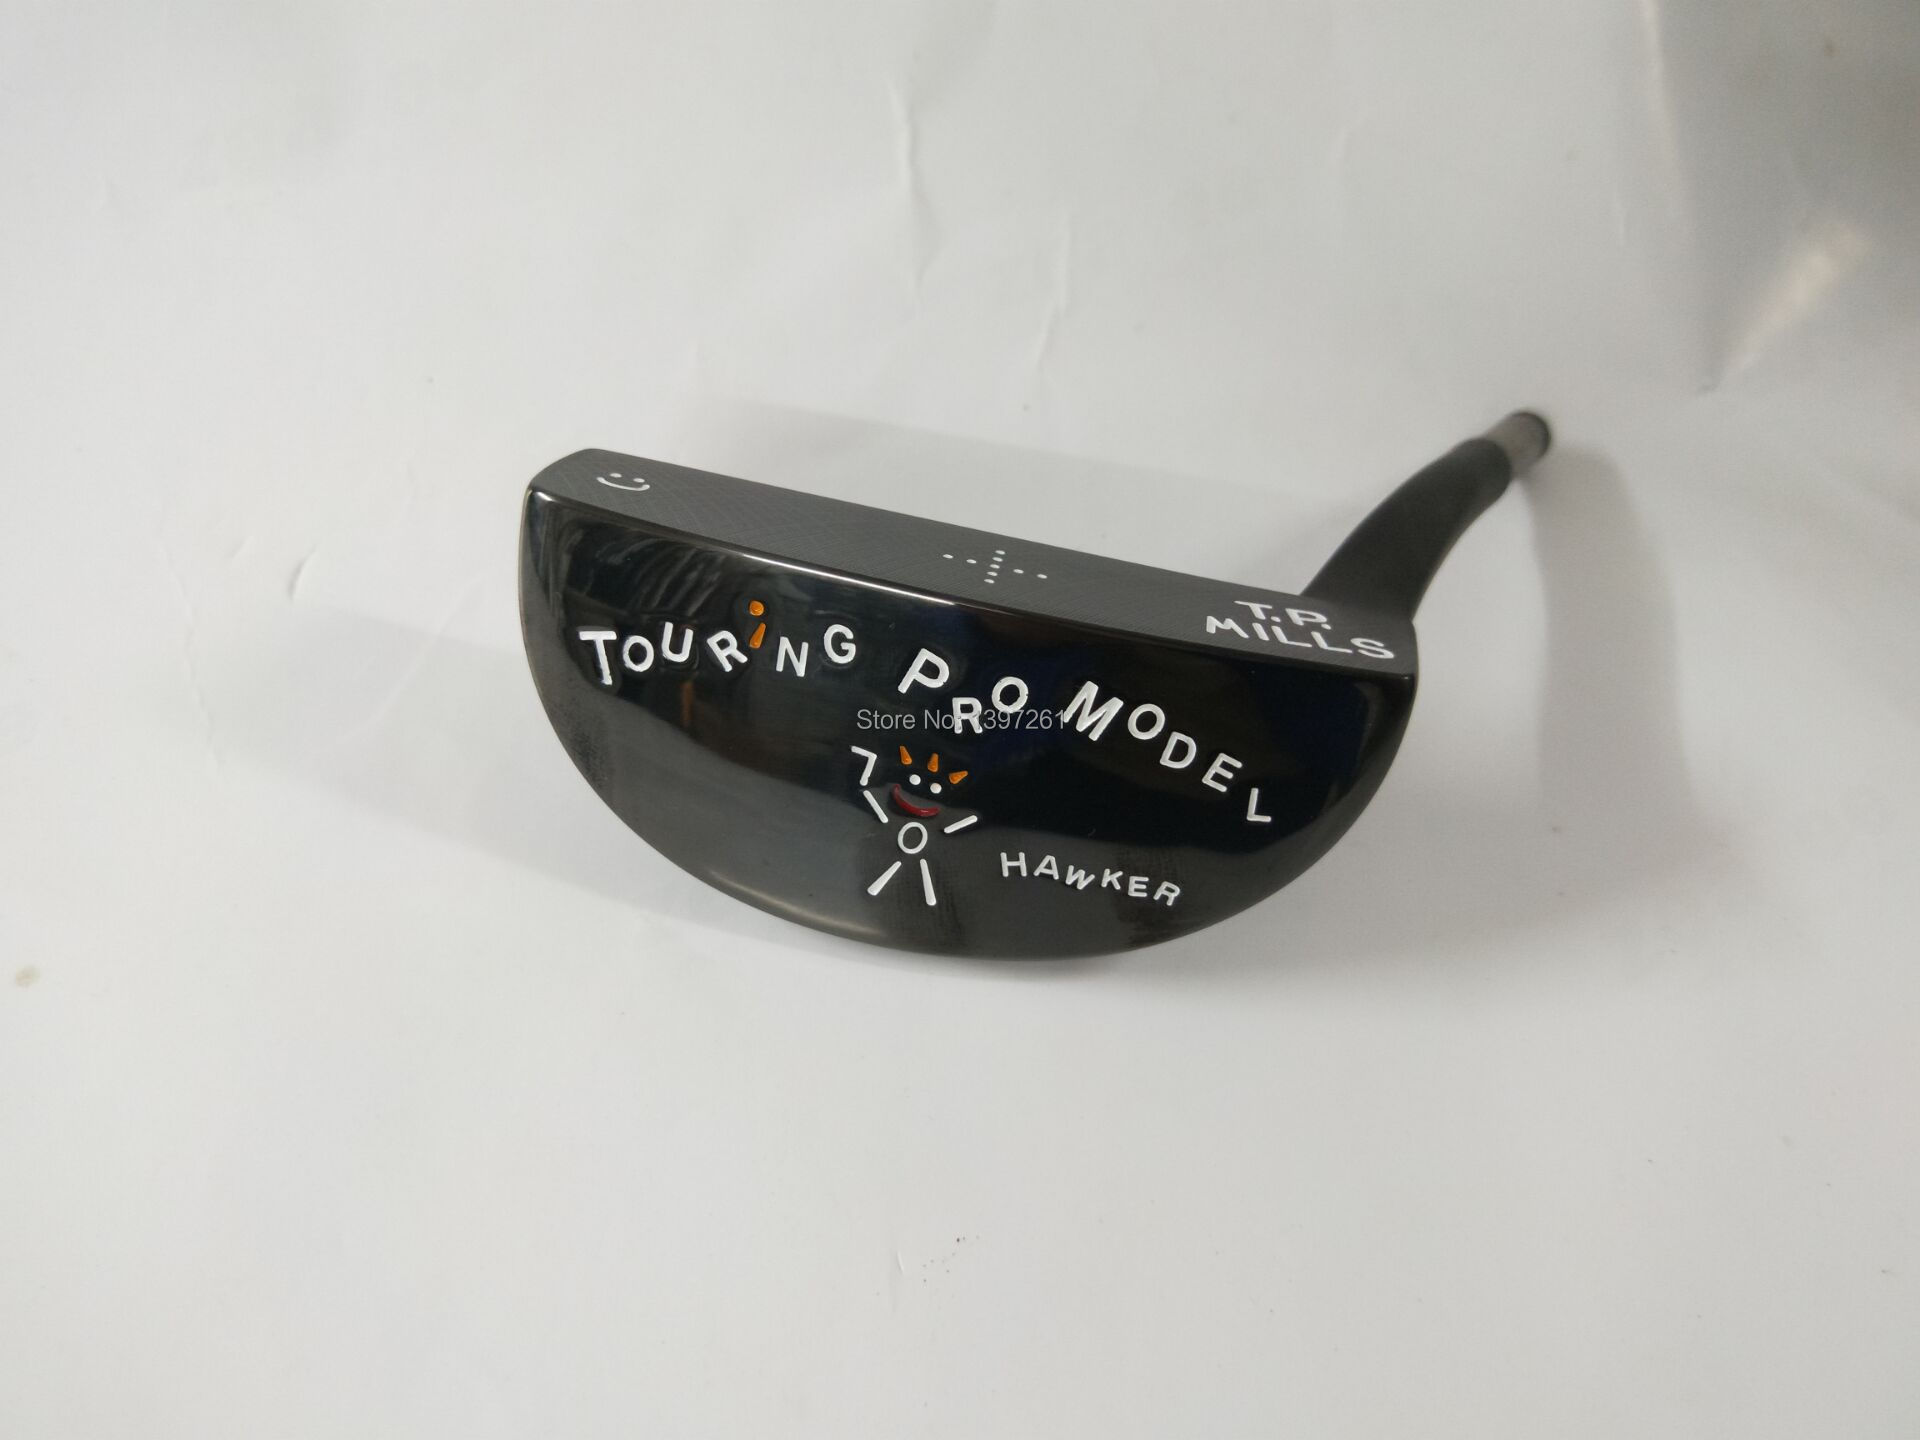 Golf Clubs TP  MILLS HAWKER TOURING  Golf Putter Head Black Color Golf Heads No Clubs Shaft Free Shipping